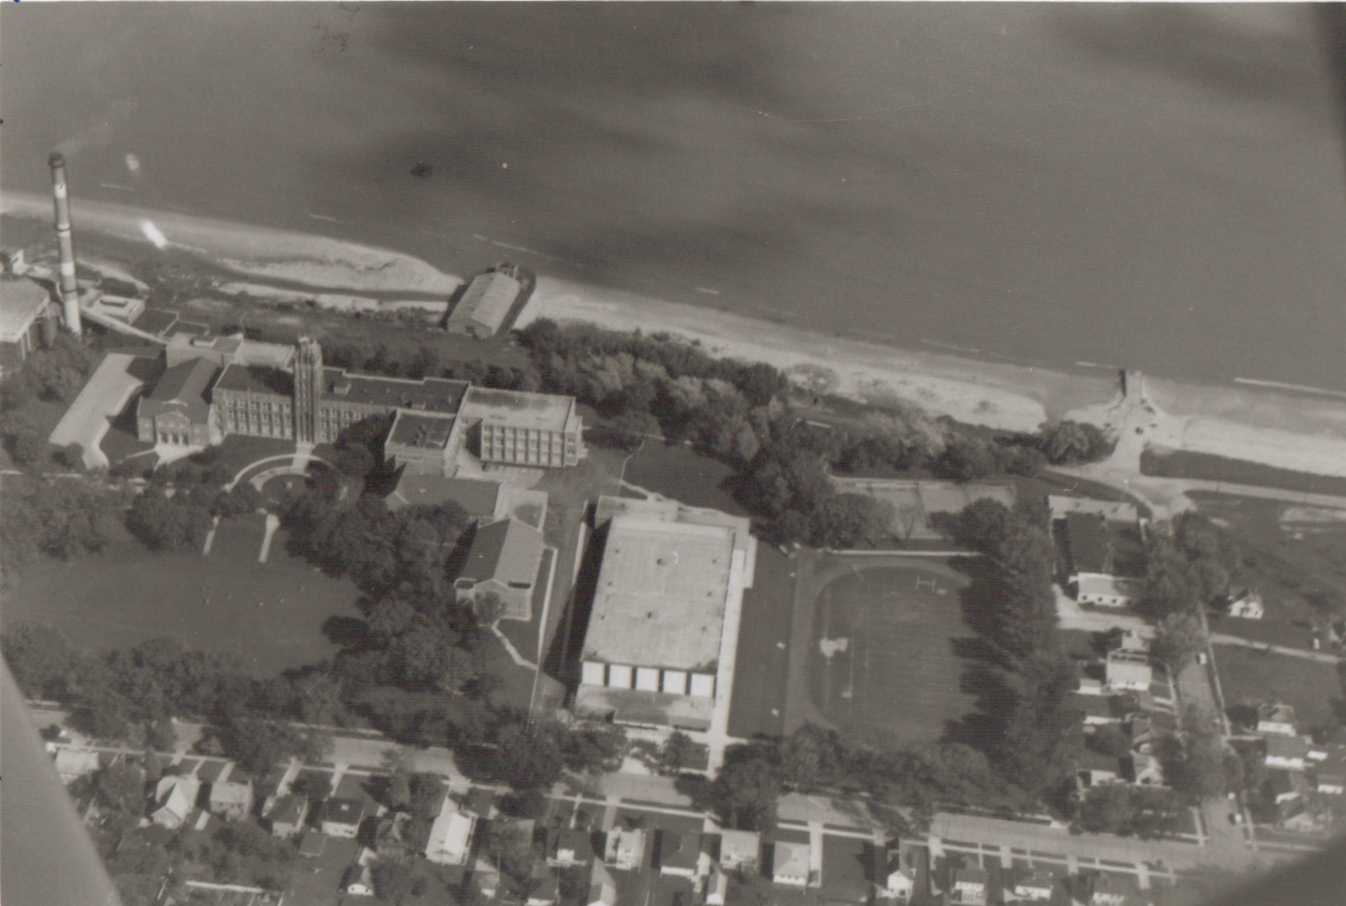 Aerial image of Lincoln's campus